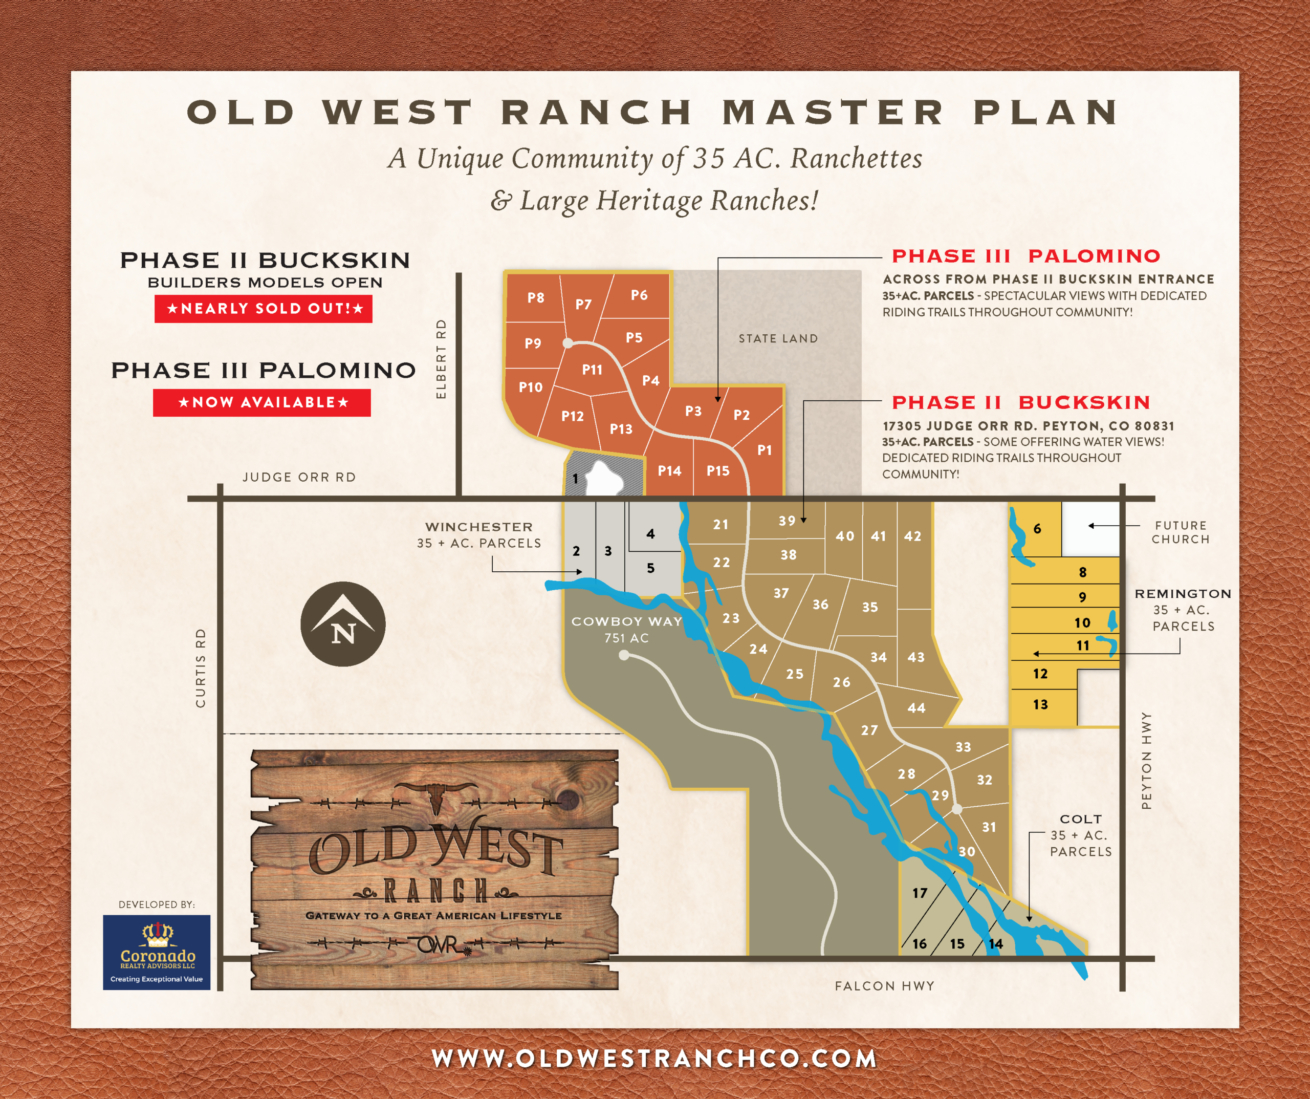 Old West Ranch Colorado land for sale Master Plan Map 4.24.20